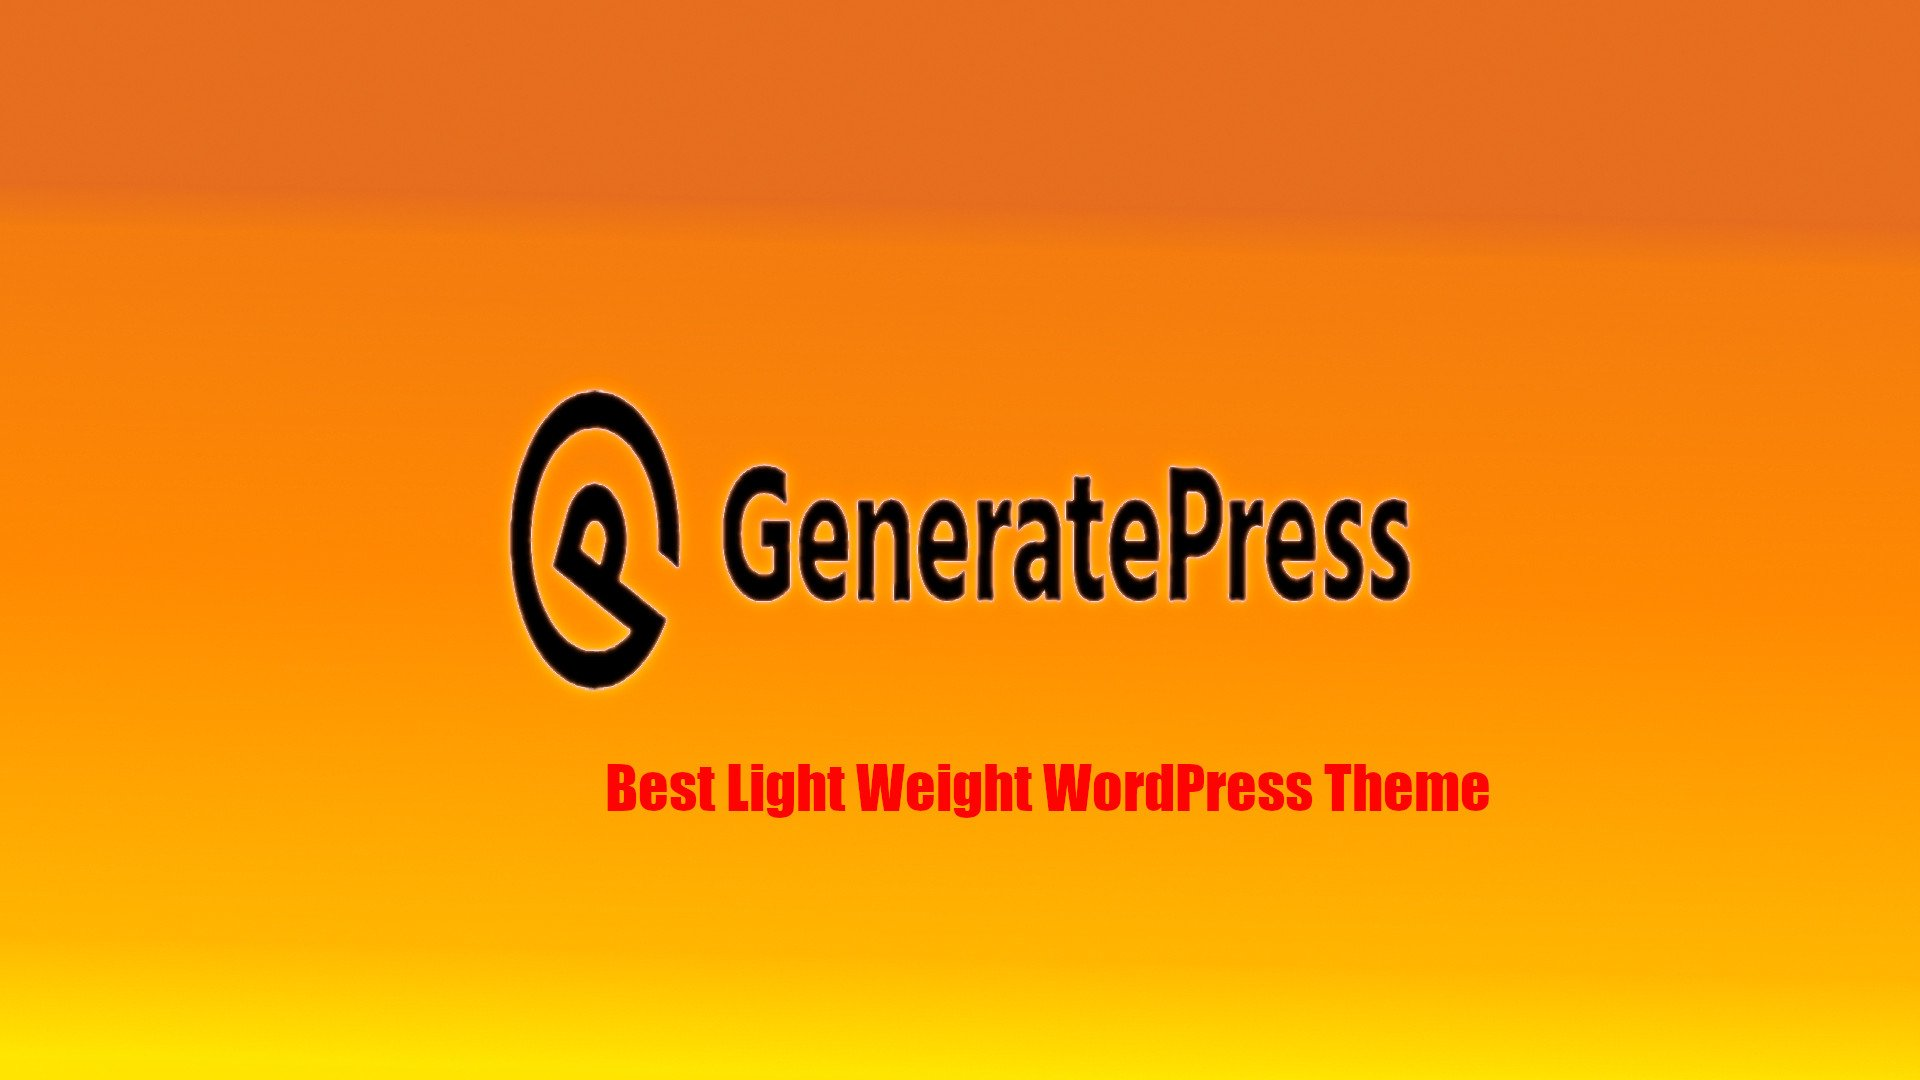 Best Lightweight WordPress Theme 2021